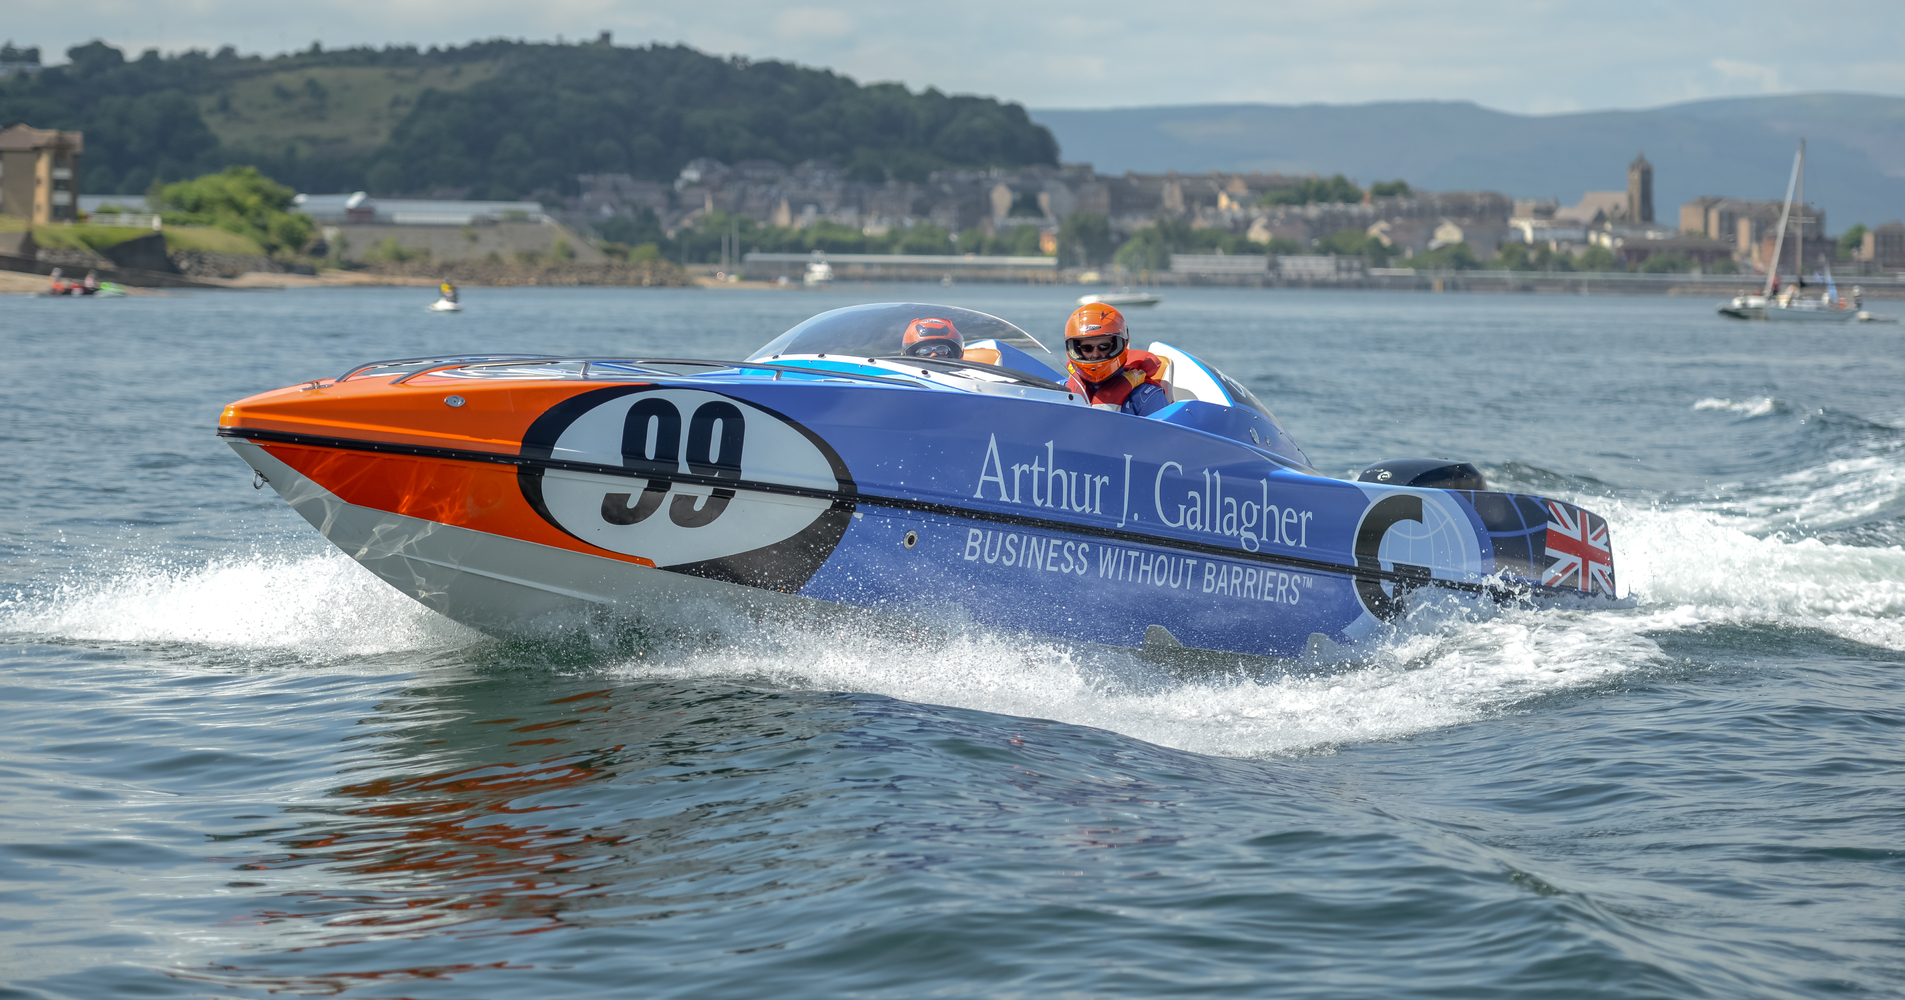 Arthur J Gallagher failed to compete for the top spots last season but will be confident of progress in 2017